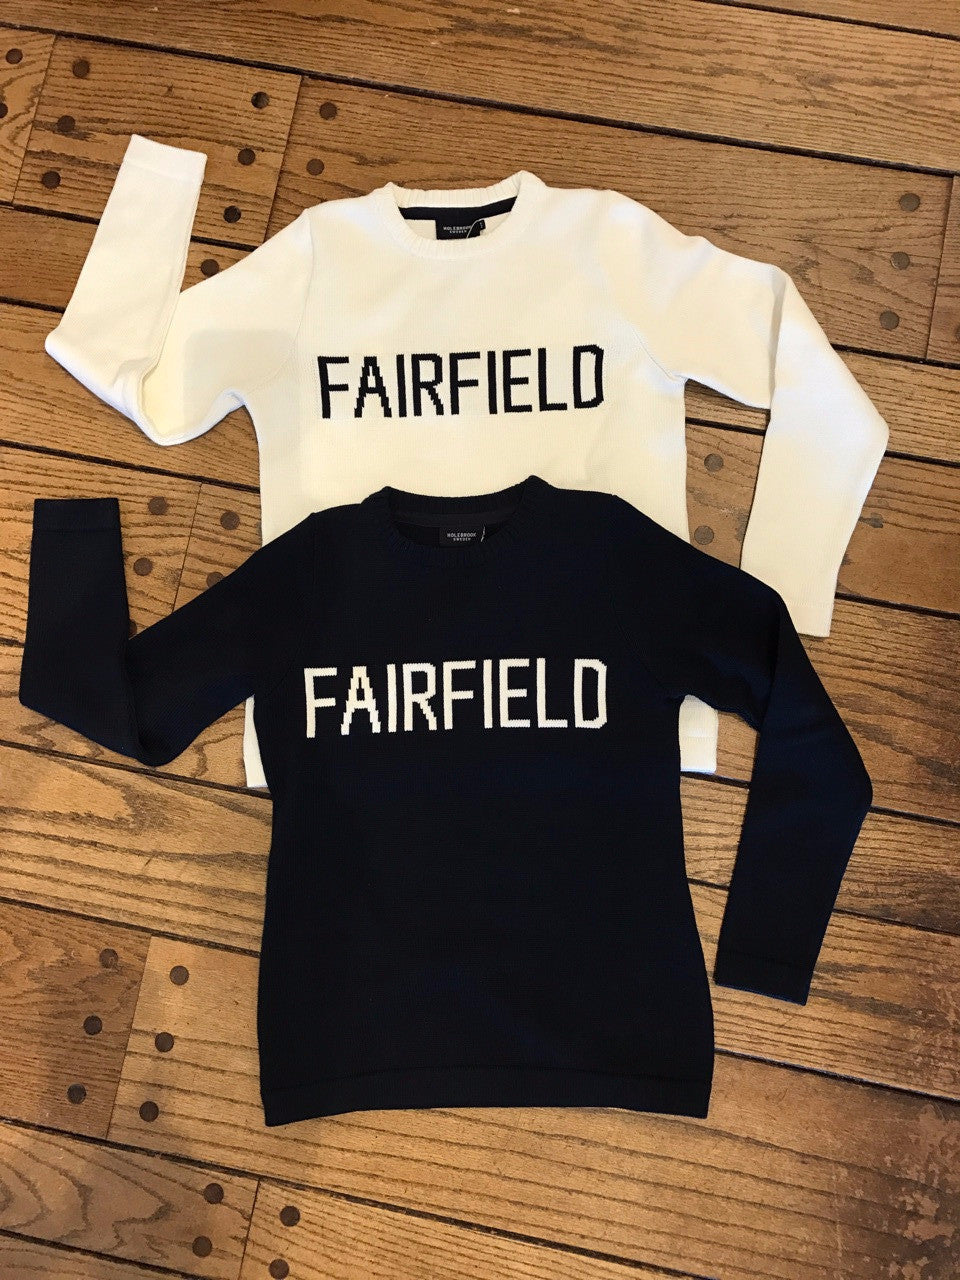 Faifield Town Sweater - Island Outfitters